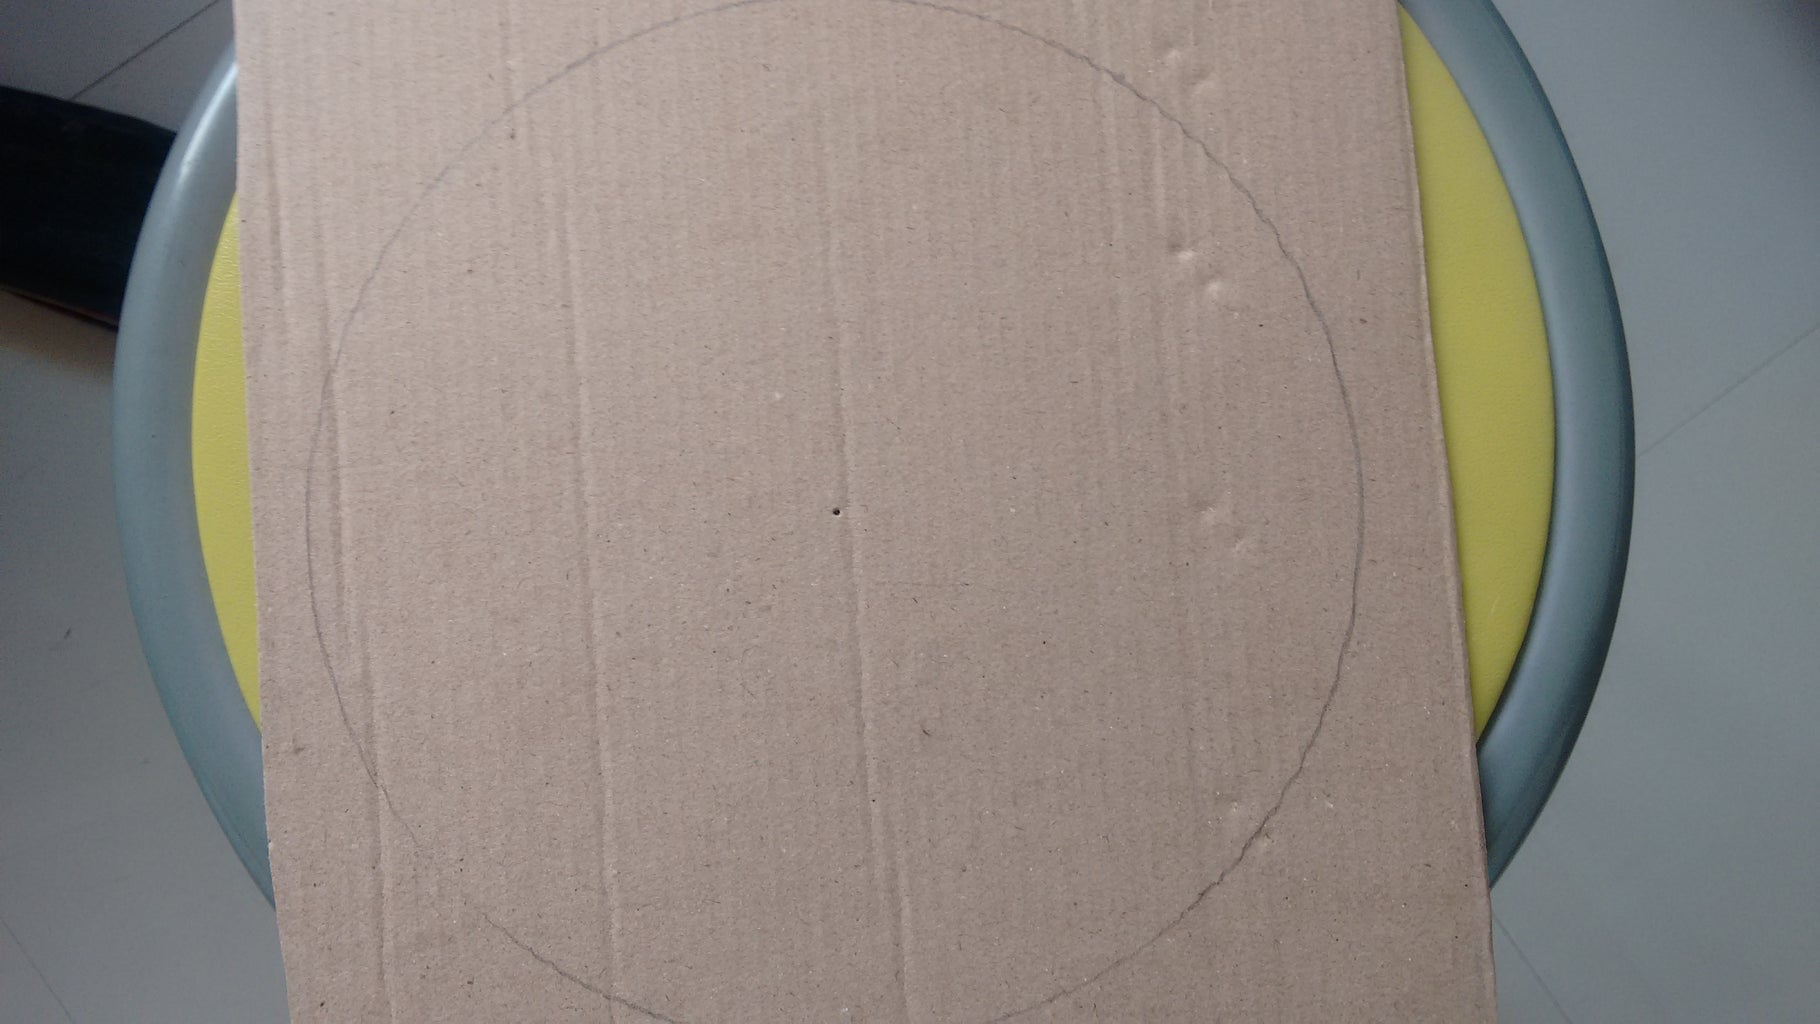 Drawing and Cutting Out the Circle